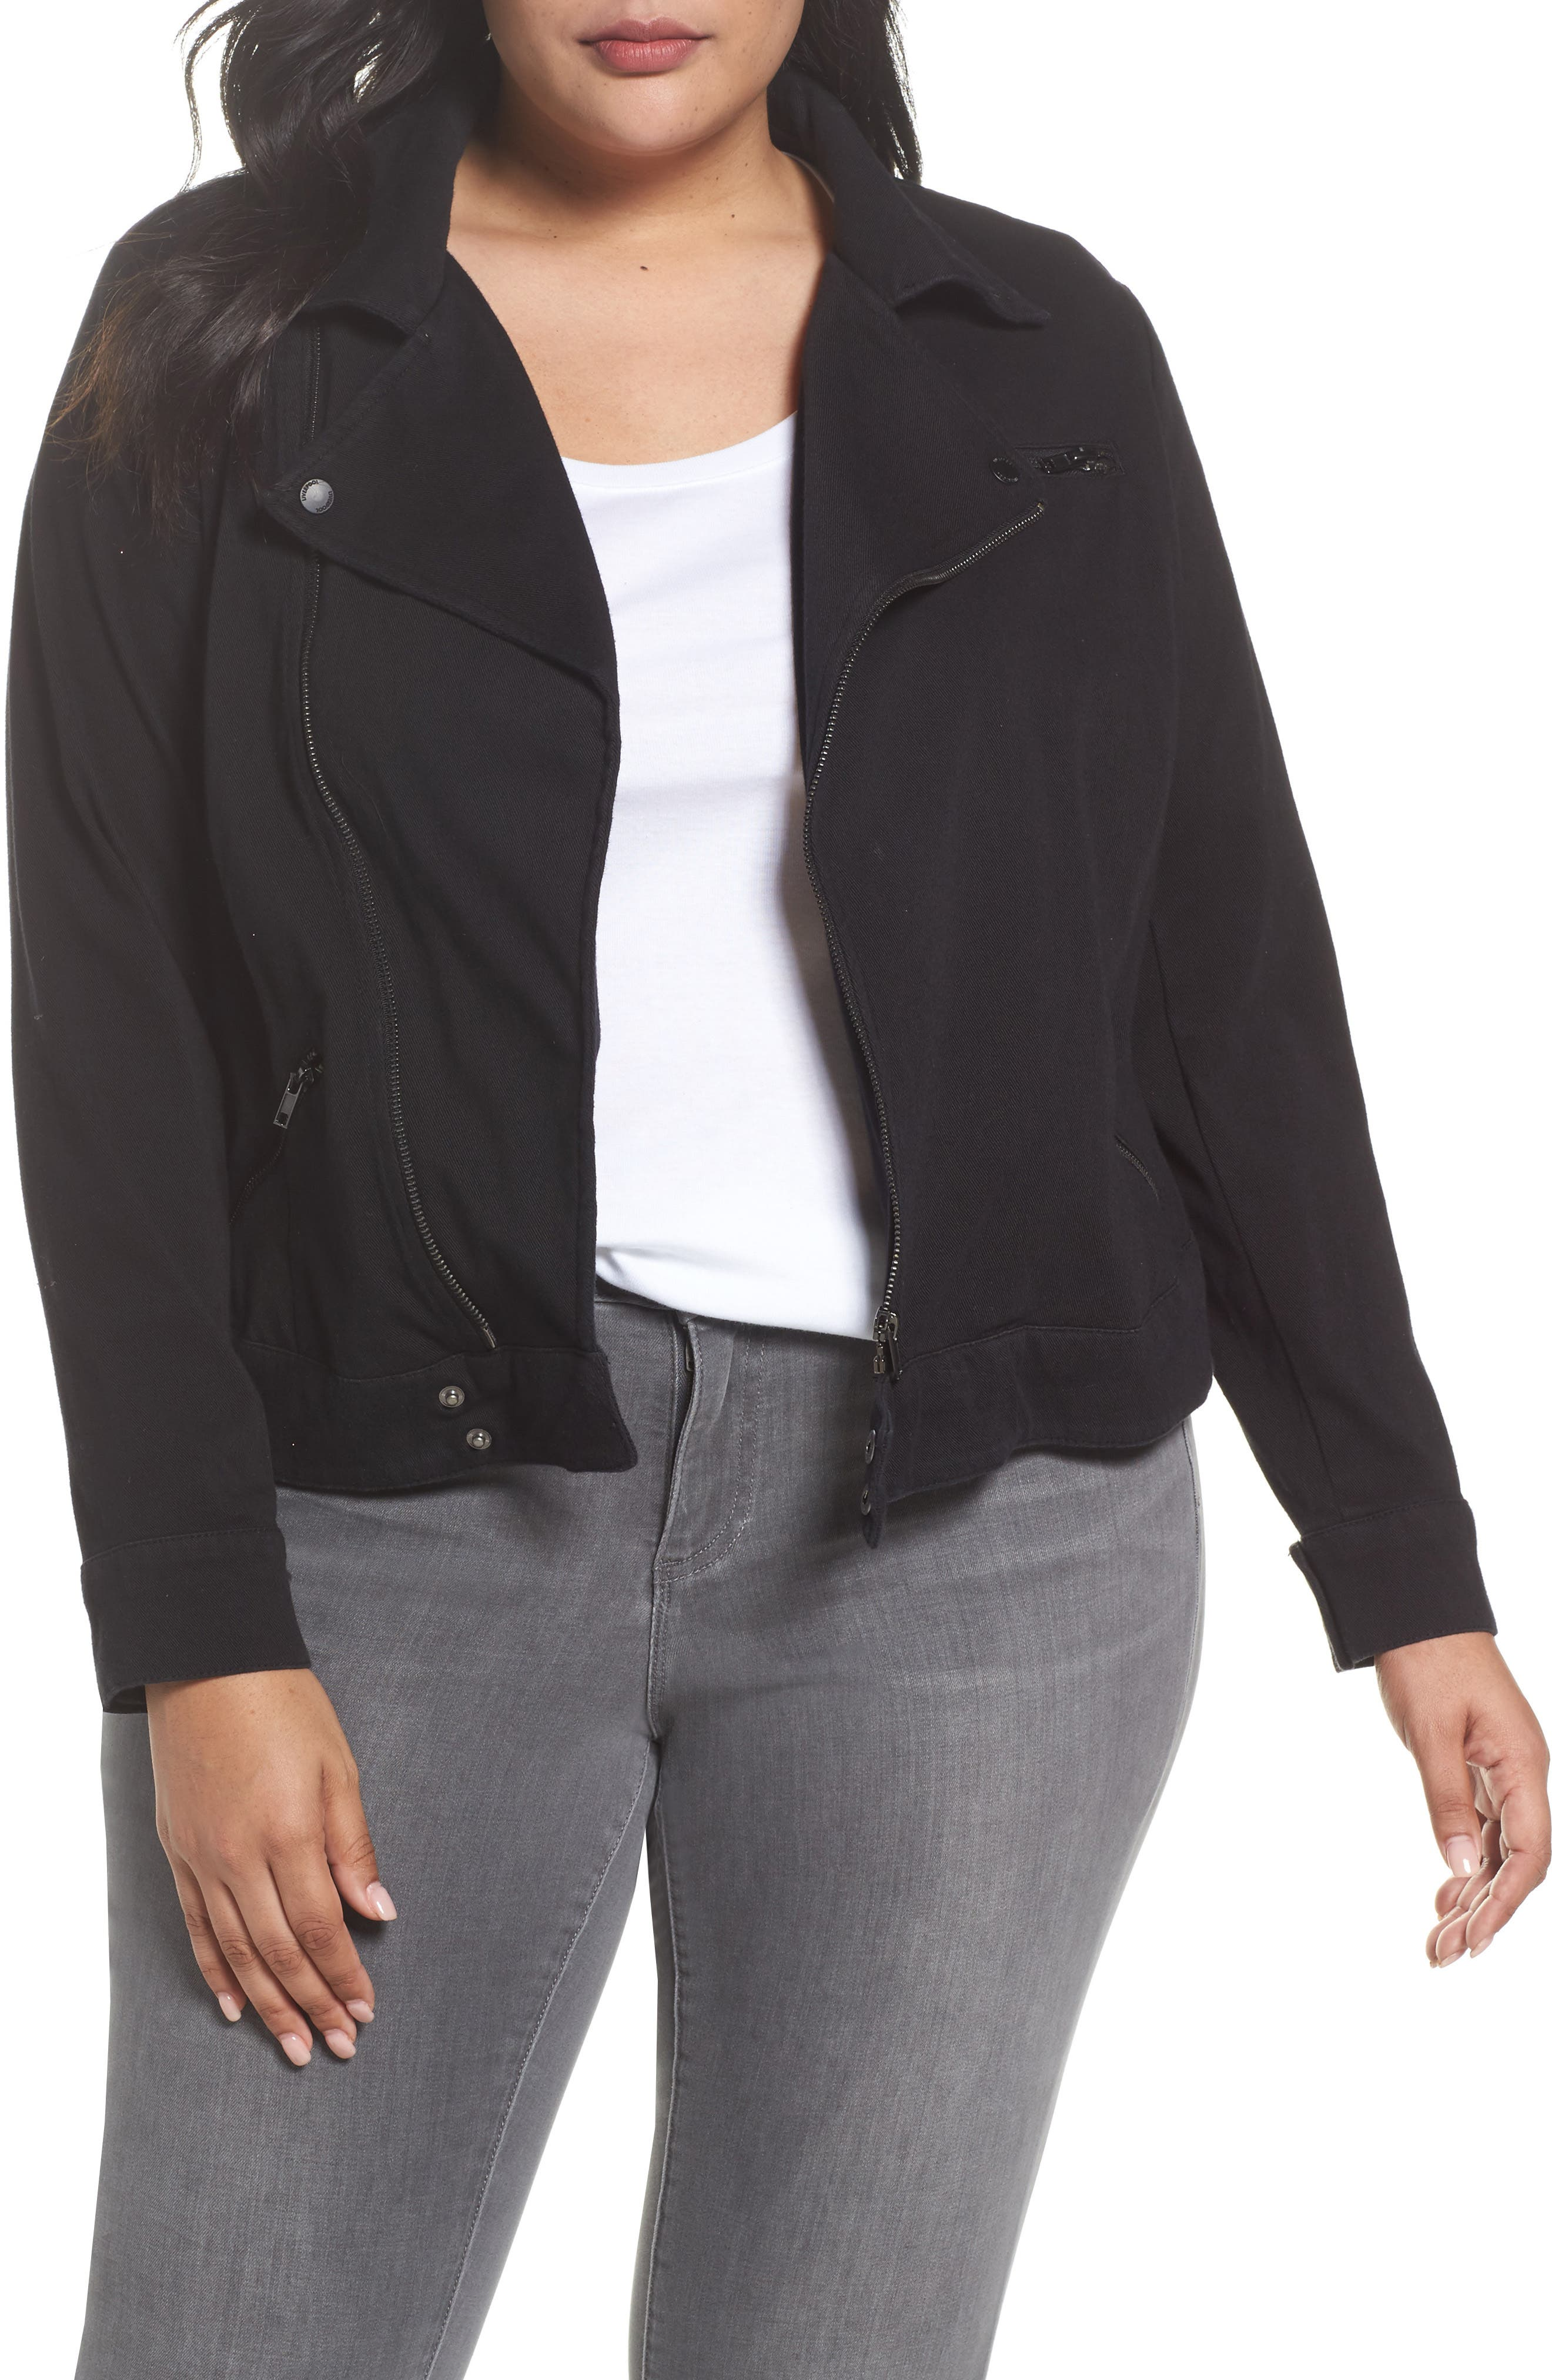 Alternate Image 1 Selected - Liverpool Jeans Company Zip Knit Moto Jacket (Plus Size)